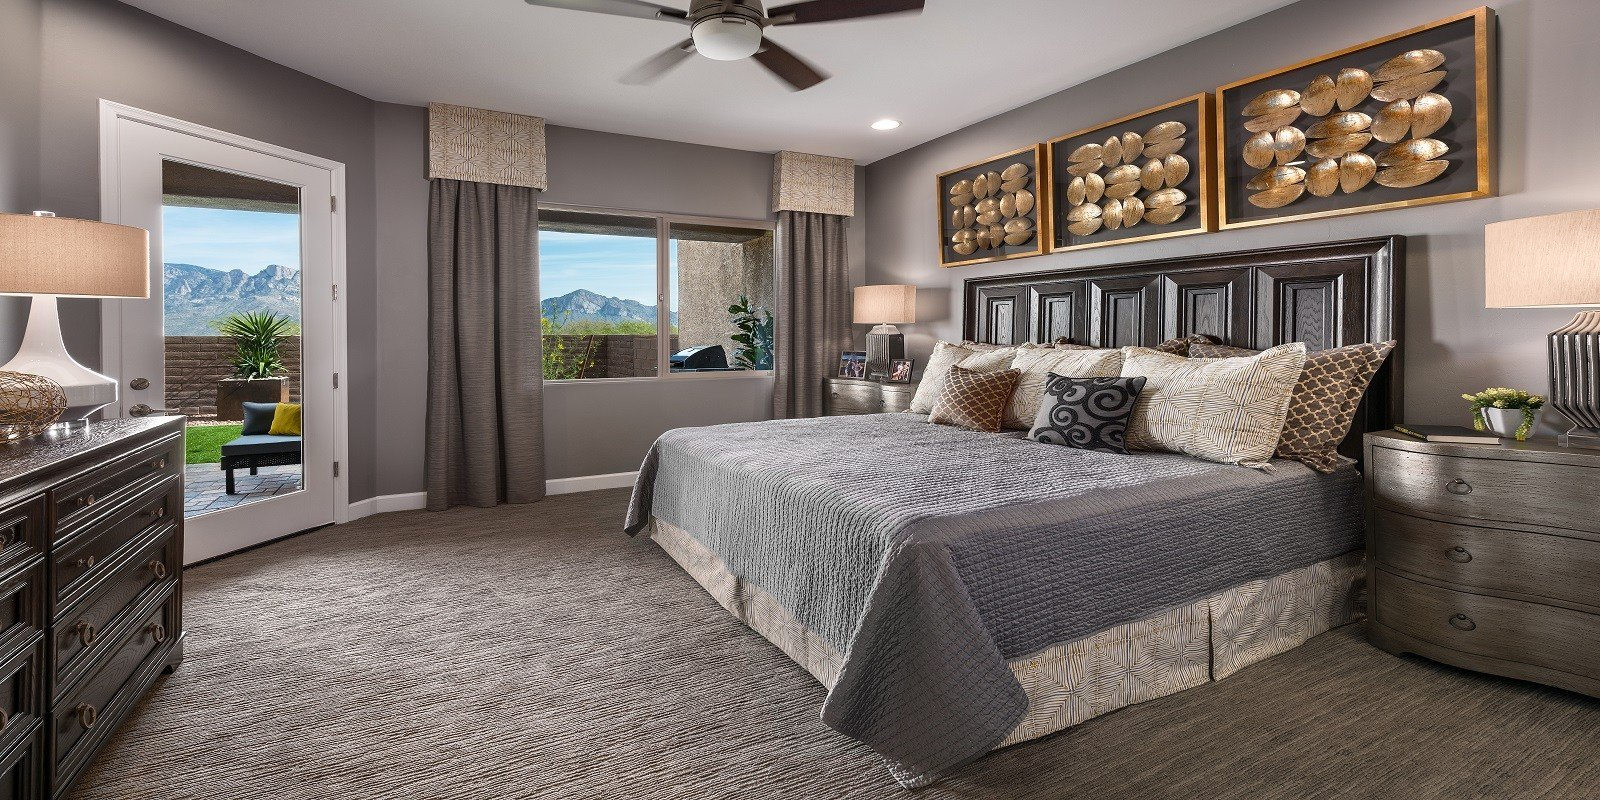 Best Mattamy Homes New Homes For Sale In Tucson Oro Valley With Pictures